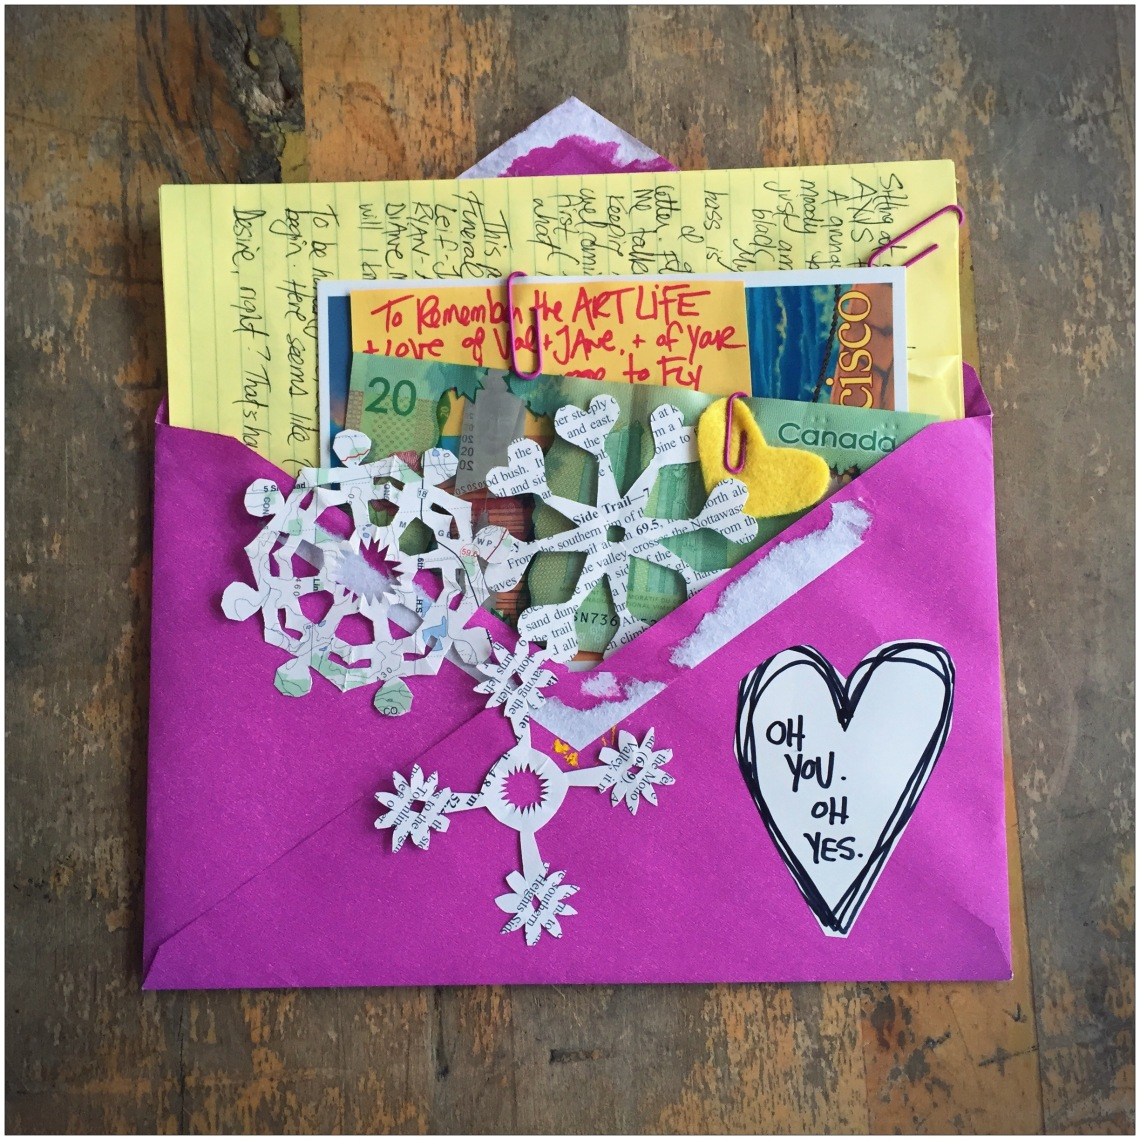 "A purple envelope filled with a birthday letter, written in black ink on a yellow sheet of lined paper. There are some homemade snowflake cut-outs in the foreground as well as a heart cut-out that reads, ""Oh you. Oh yes."" This is by Danette Relic."